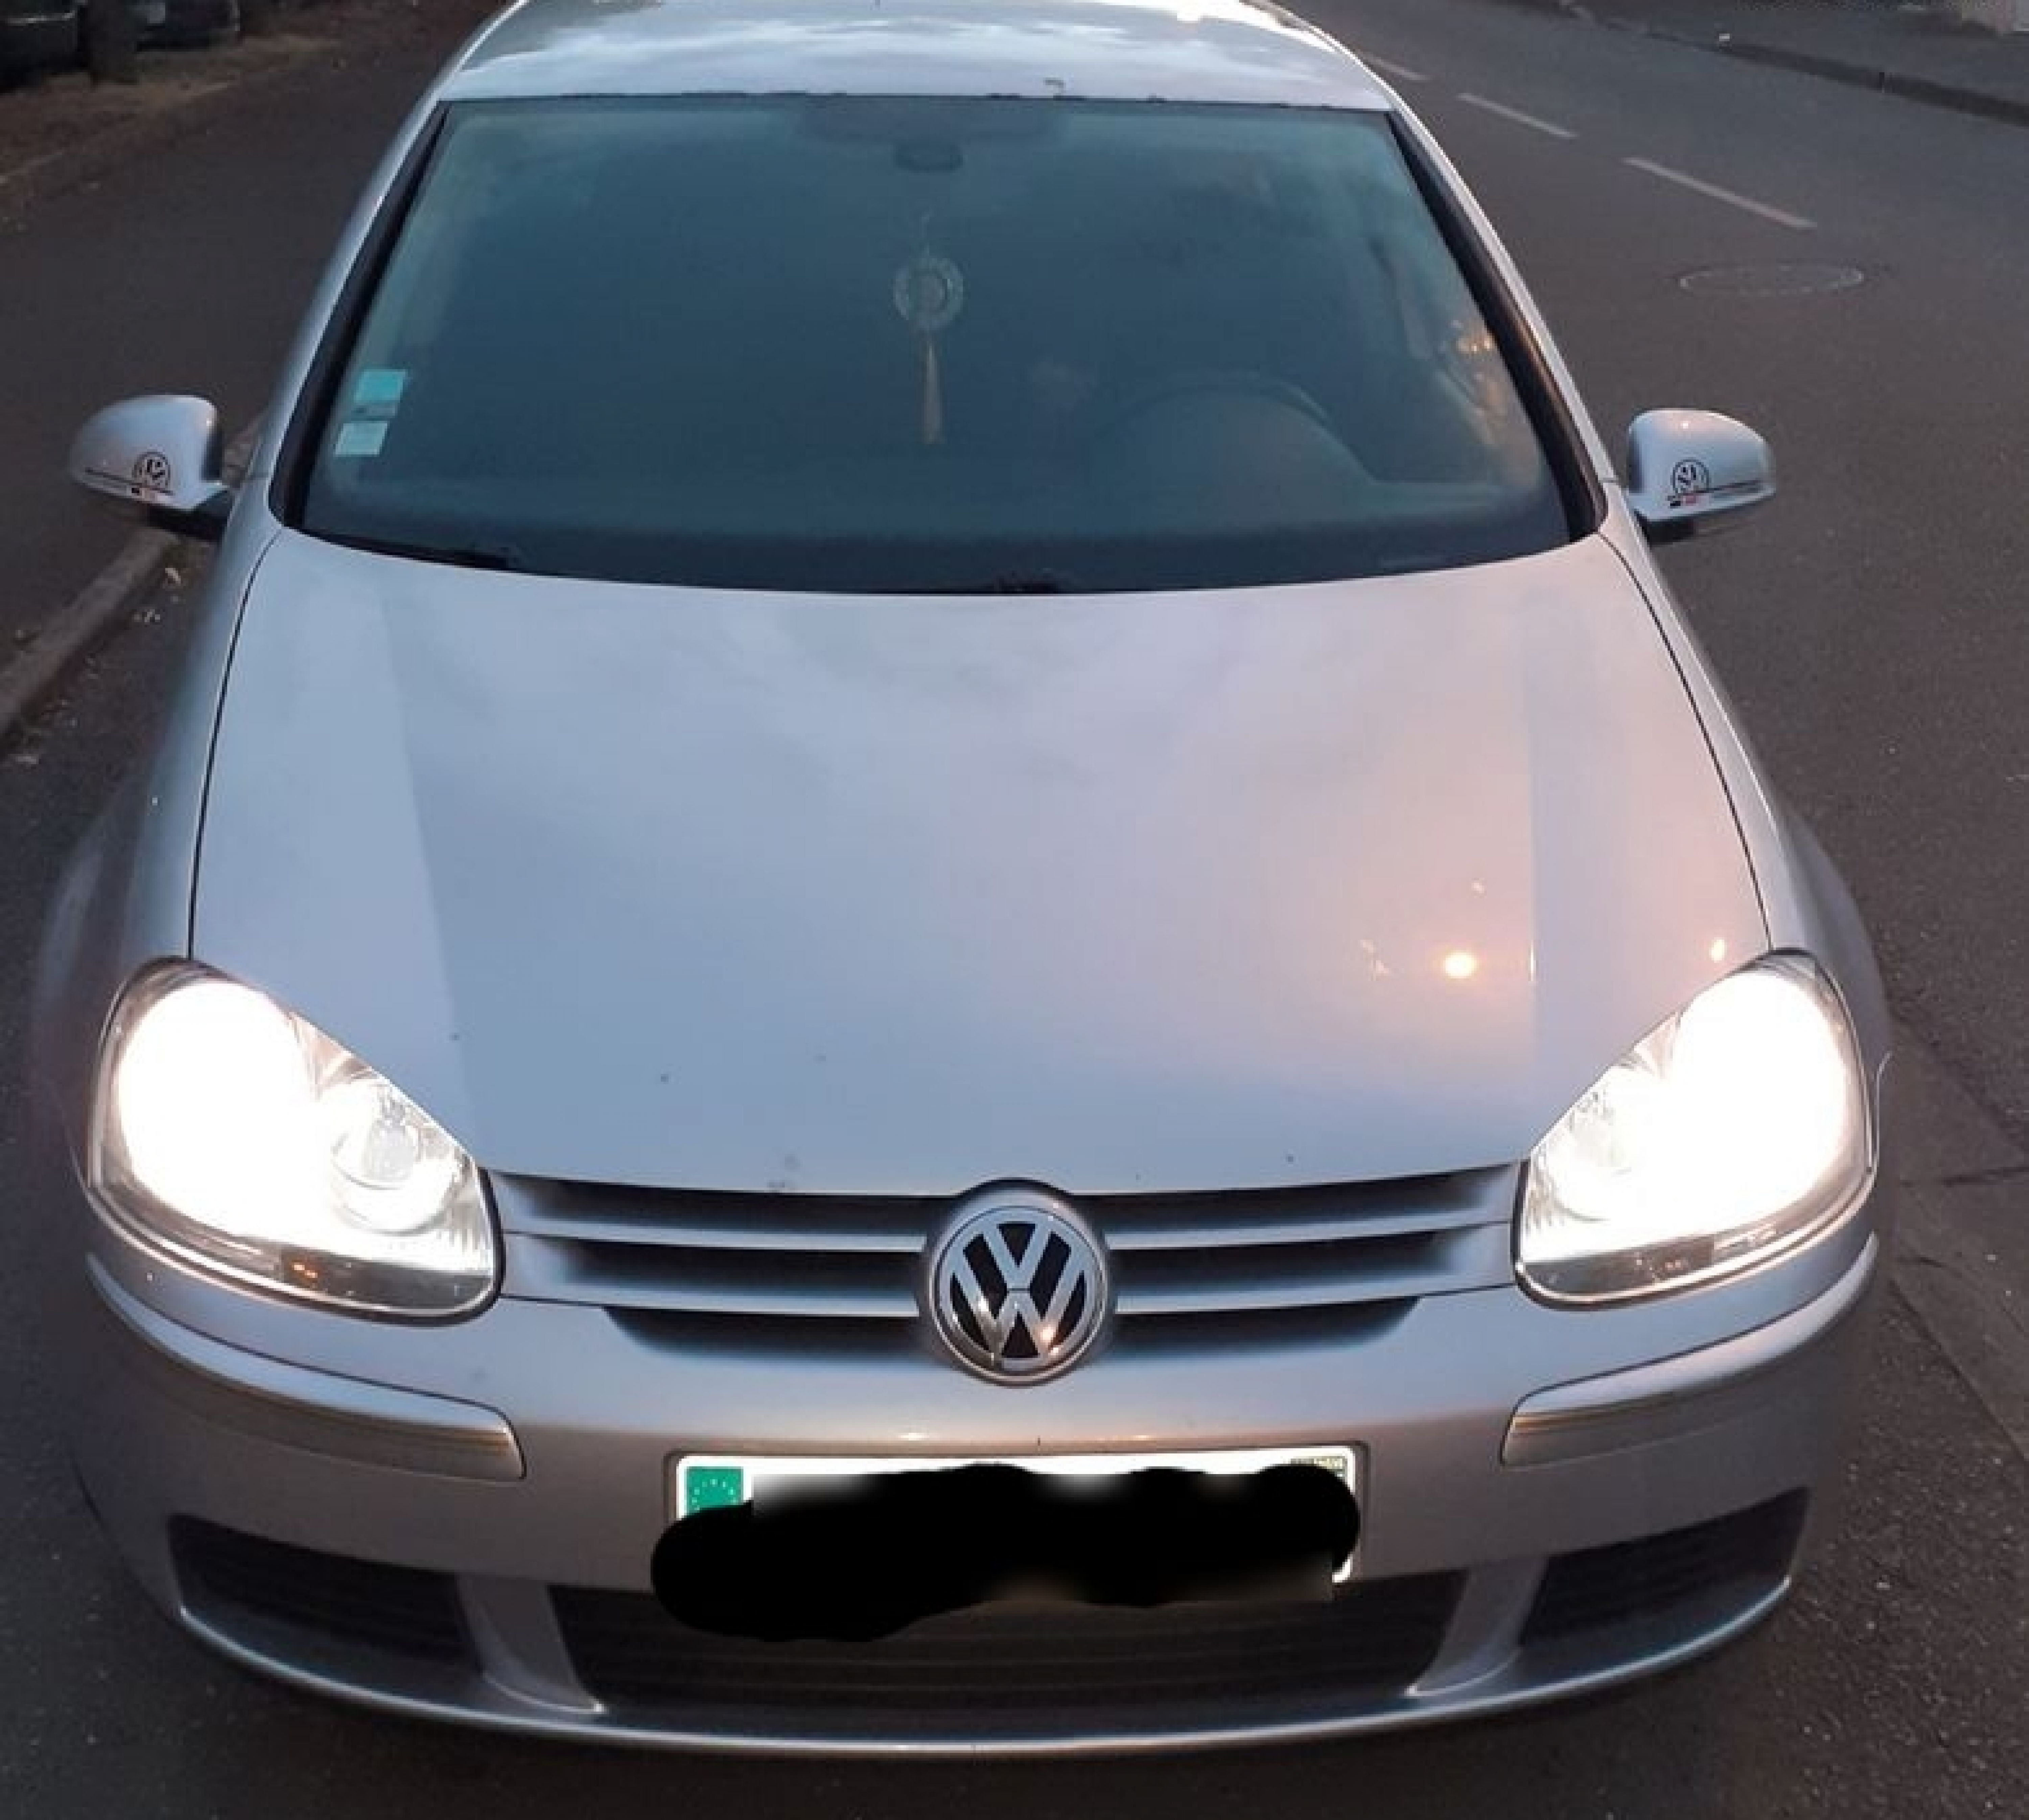 Golf 5 tdi 1.9l - Photo 1